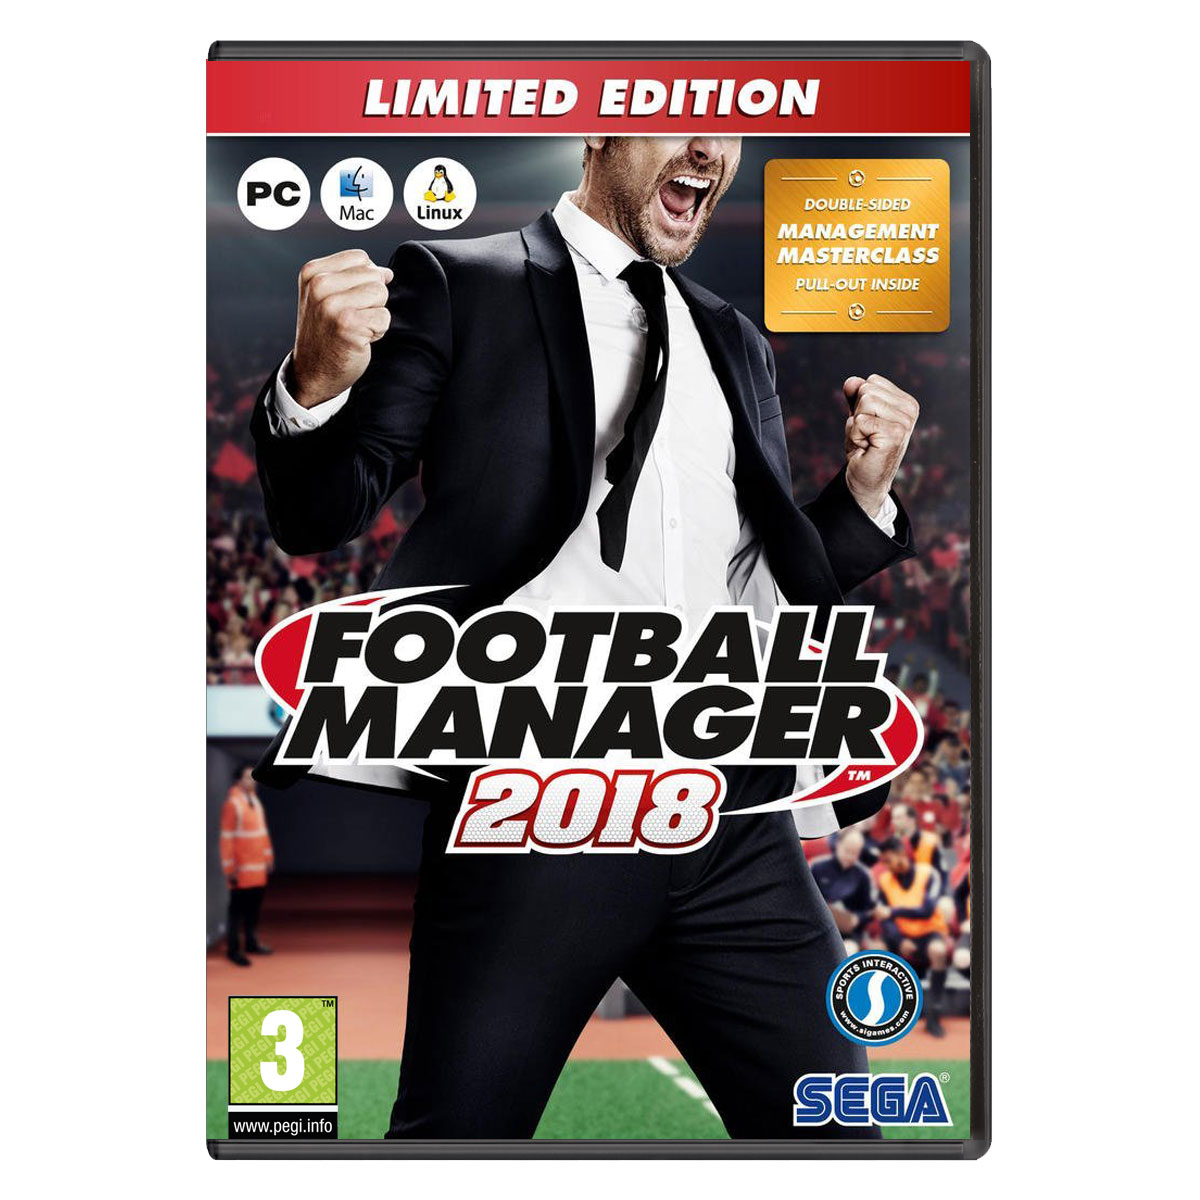 football manager 2018 edition limit e pc jeux pc sports interactive ltd sur. Black Bedroom Furniture Sets. Home Design Ideas